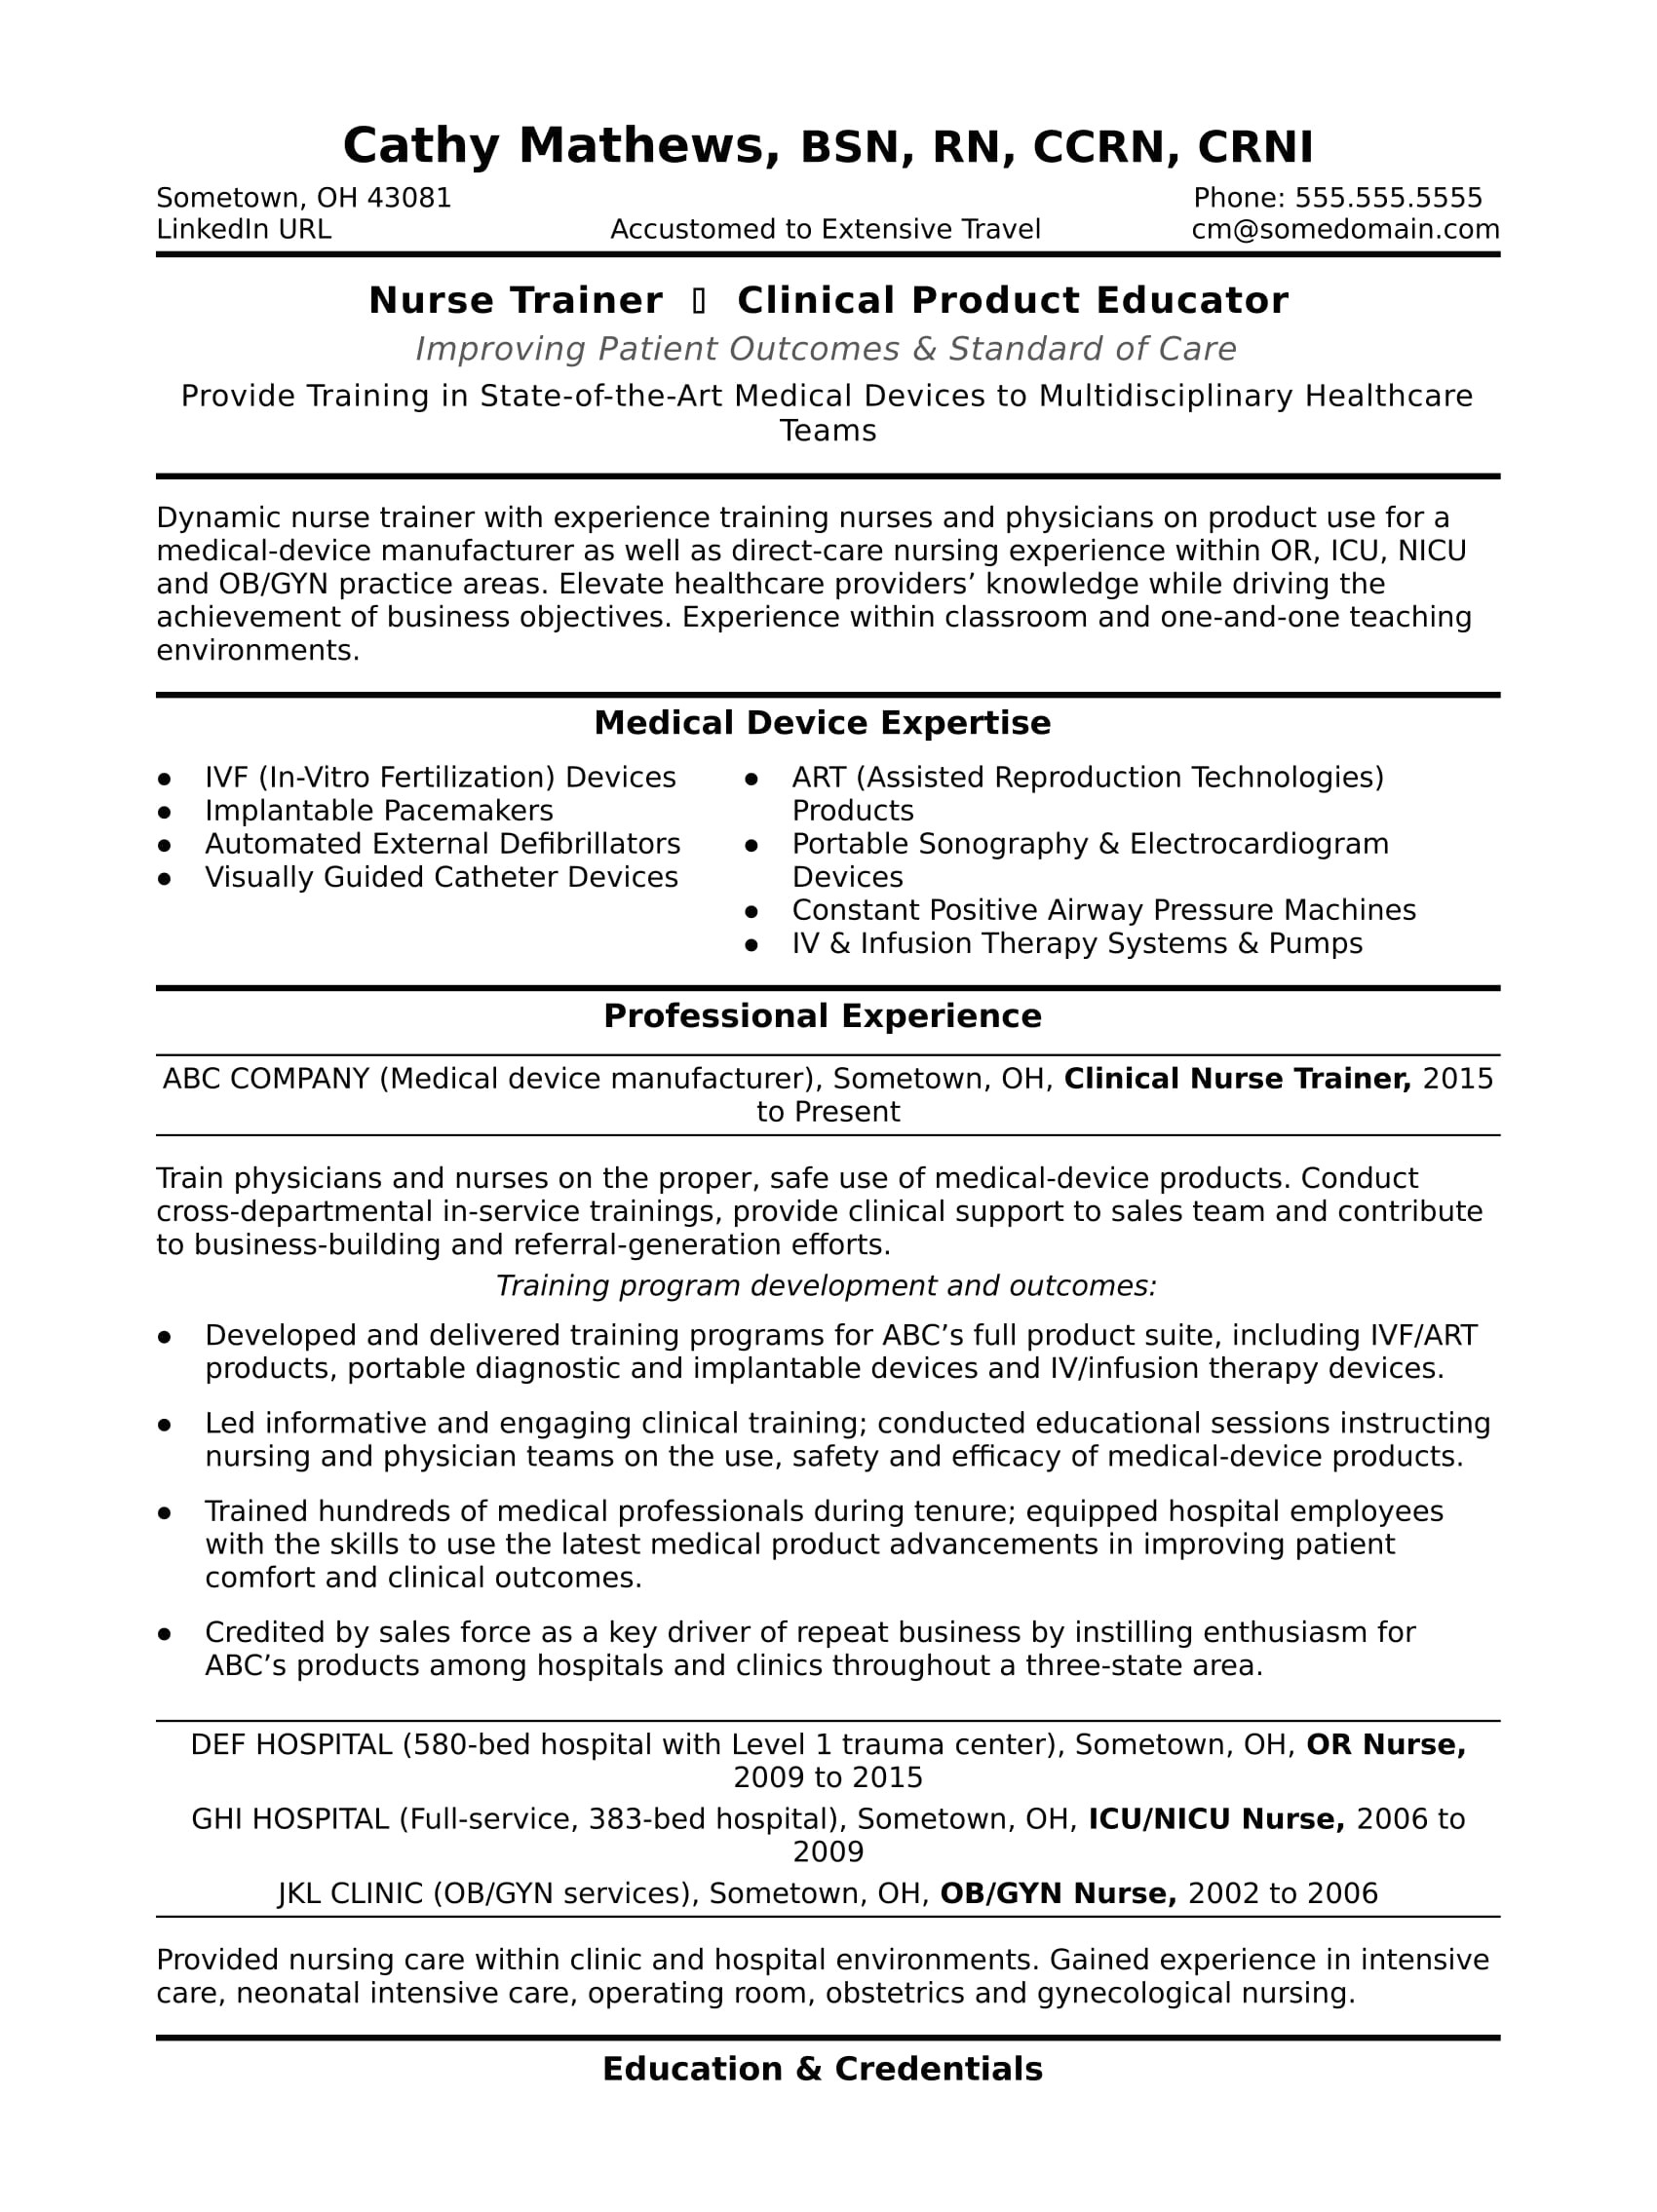 sample resume nurse trainer